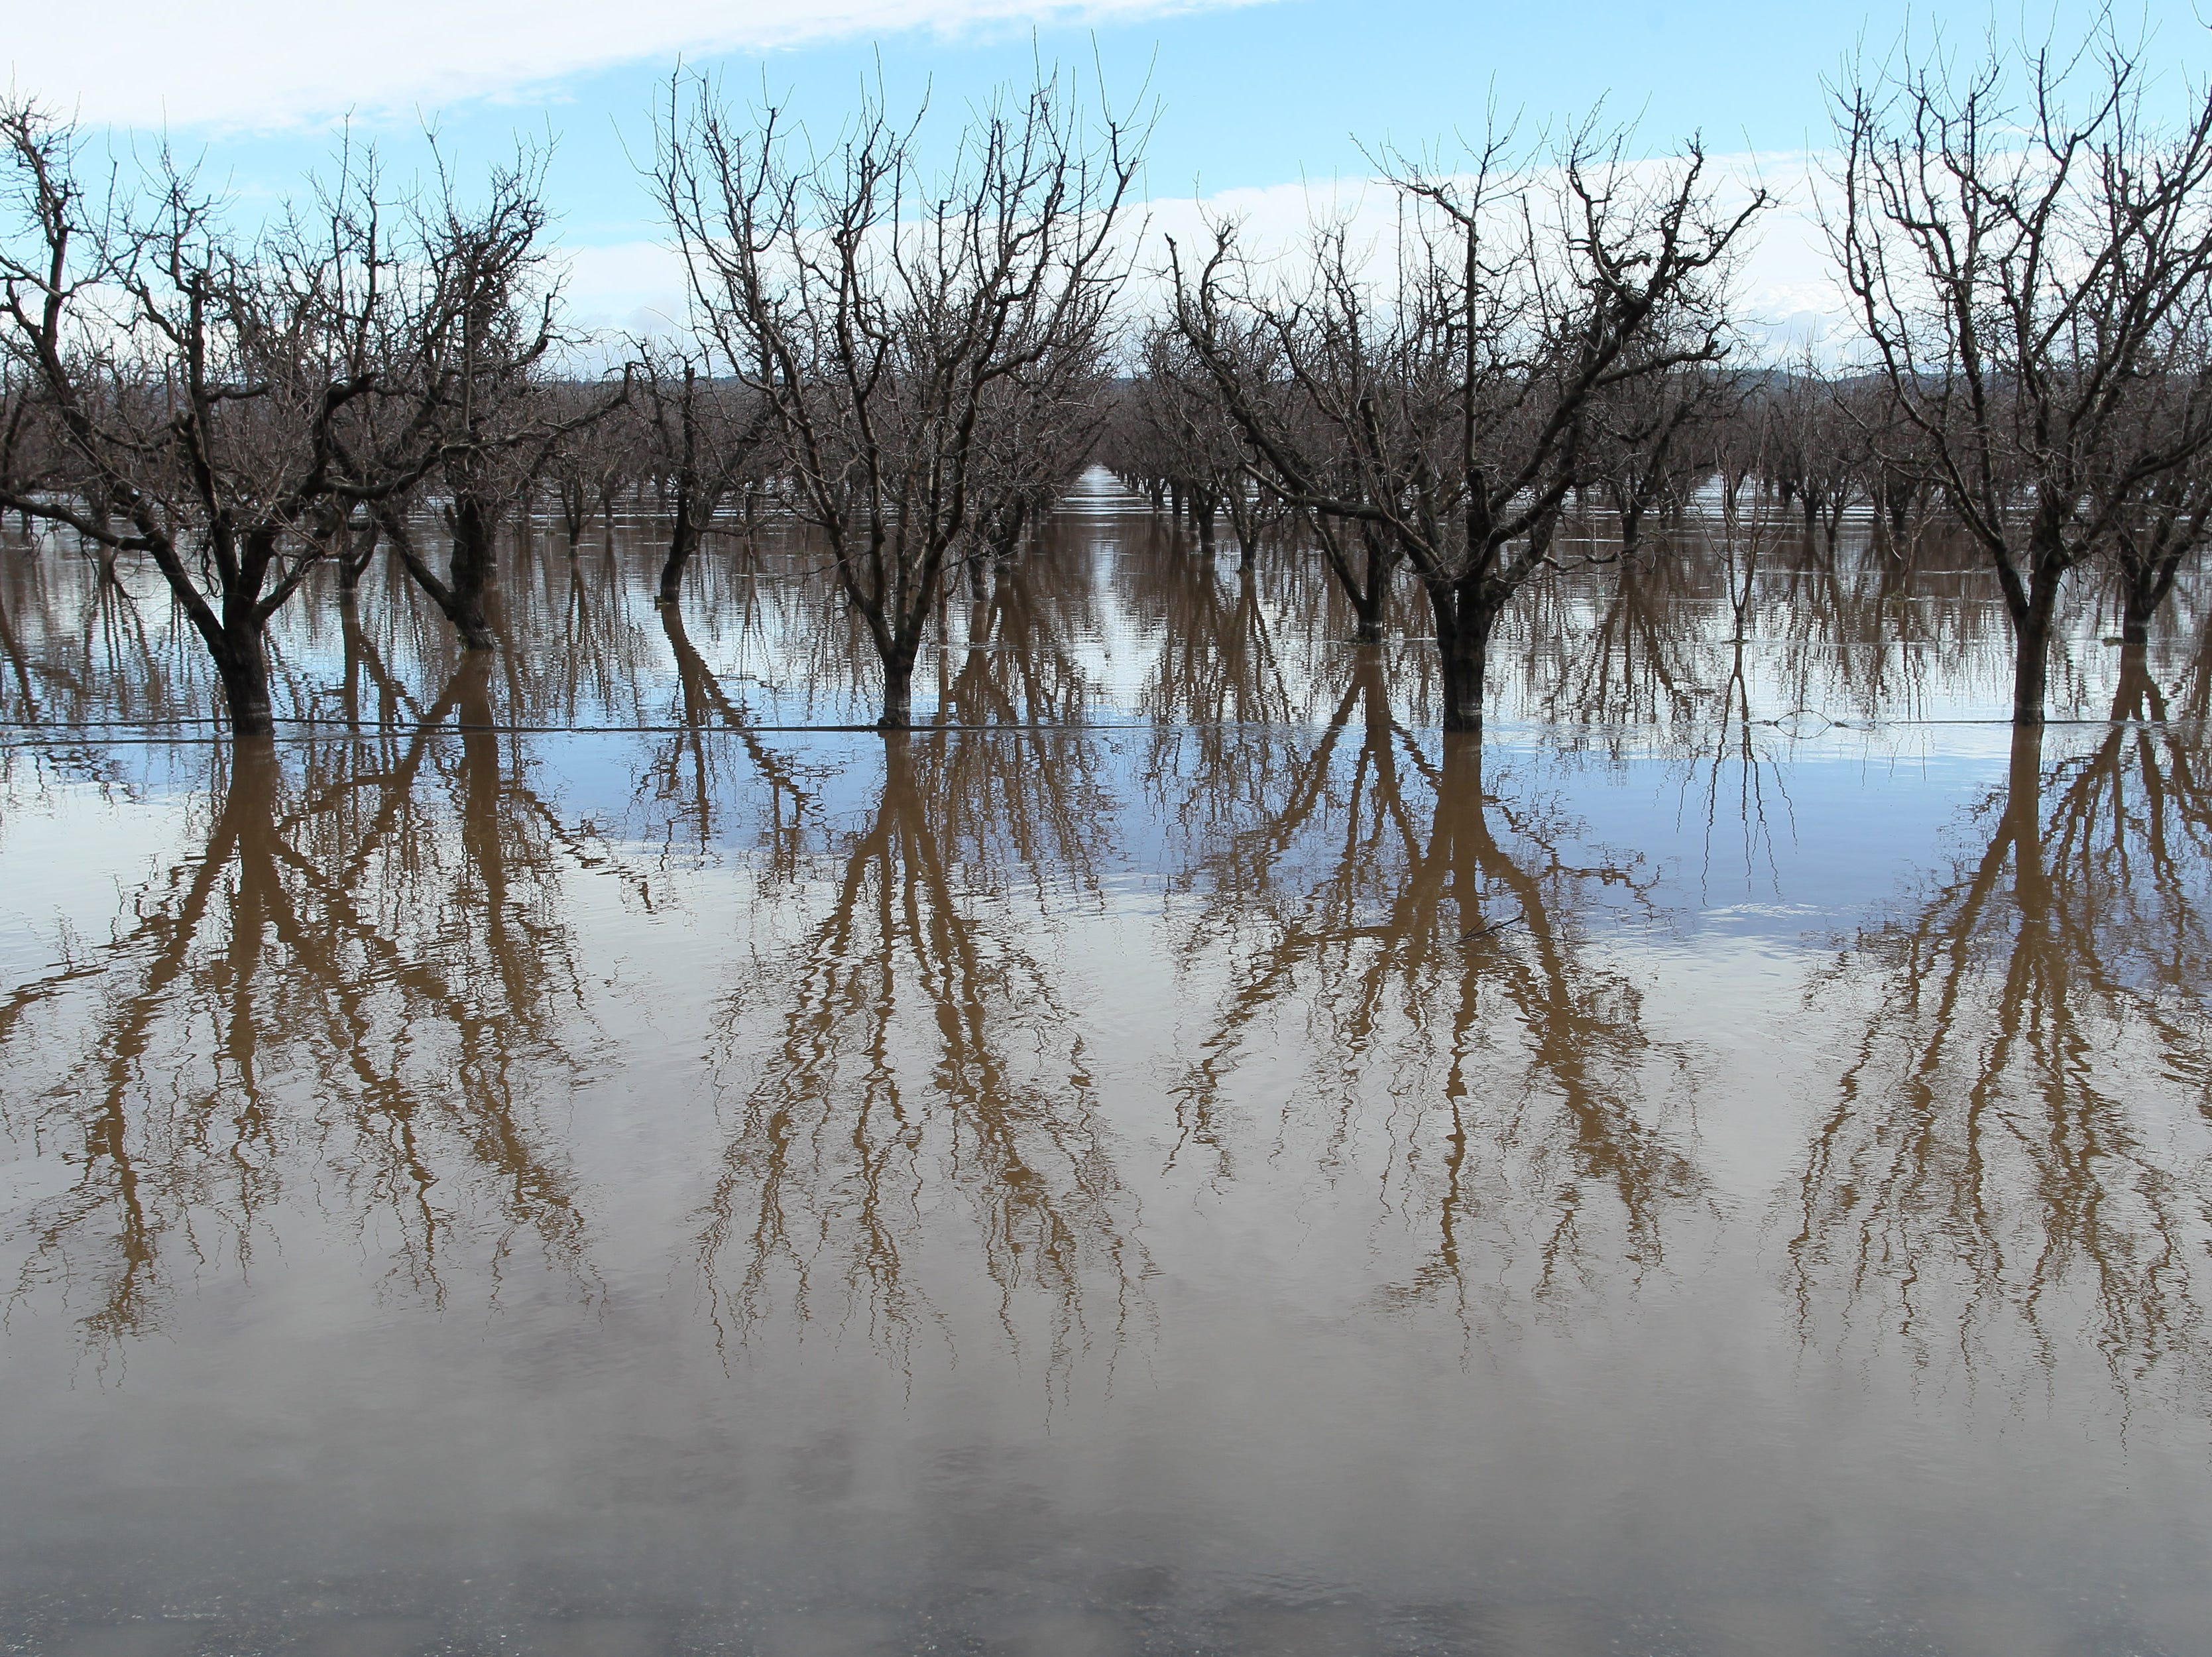 Flooded field of the orchard along Hwy. 99 east of Red Bluff.